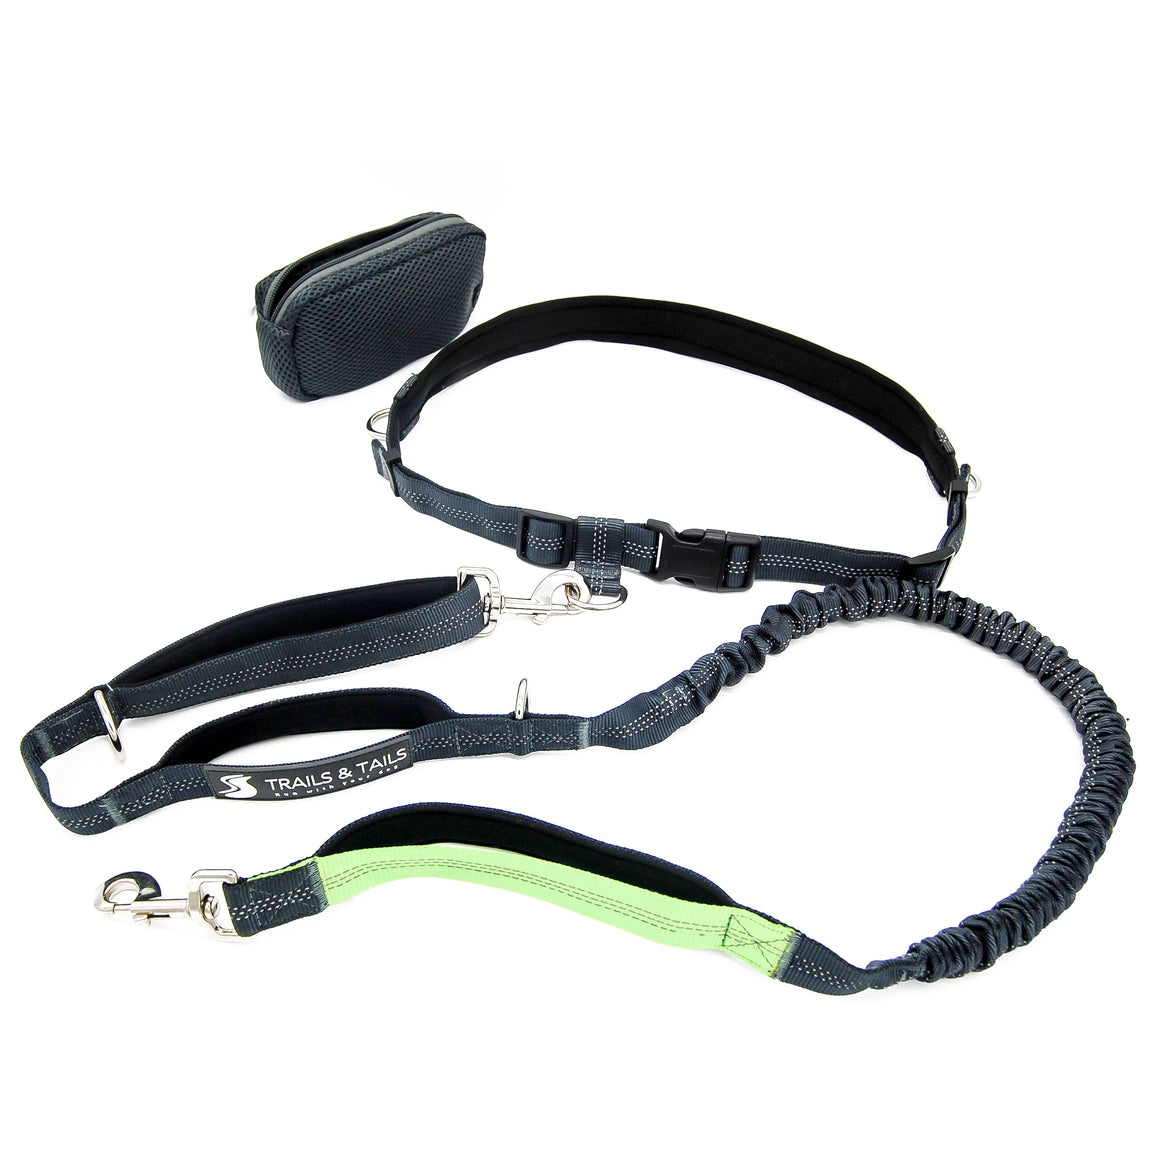 Trails & Tails Ultimate Hands-Free Dog Leash